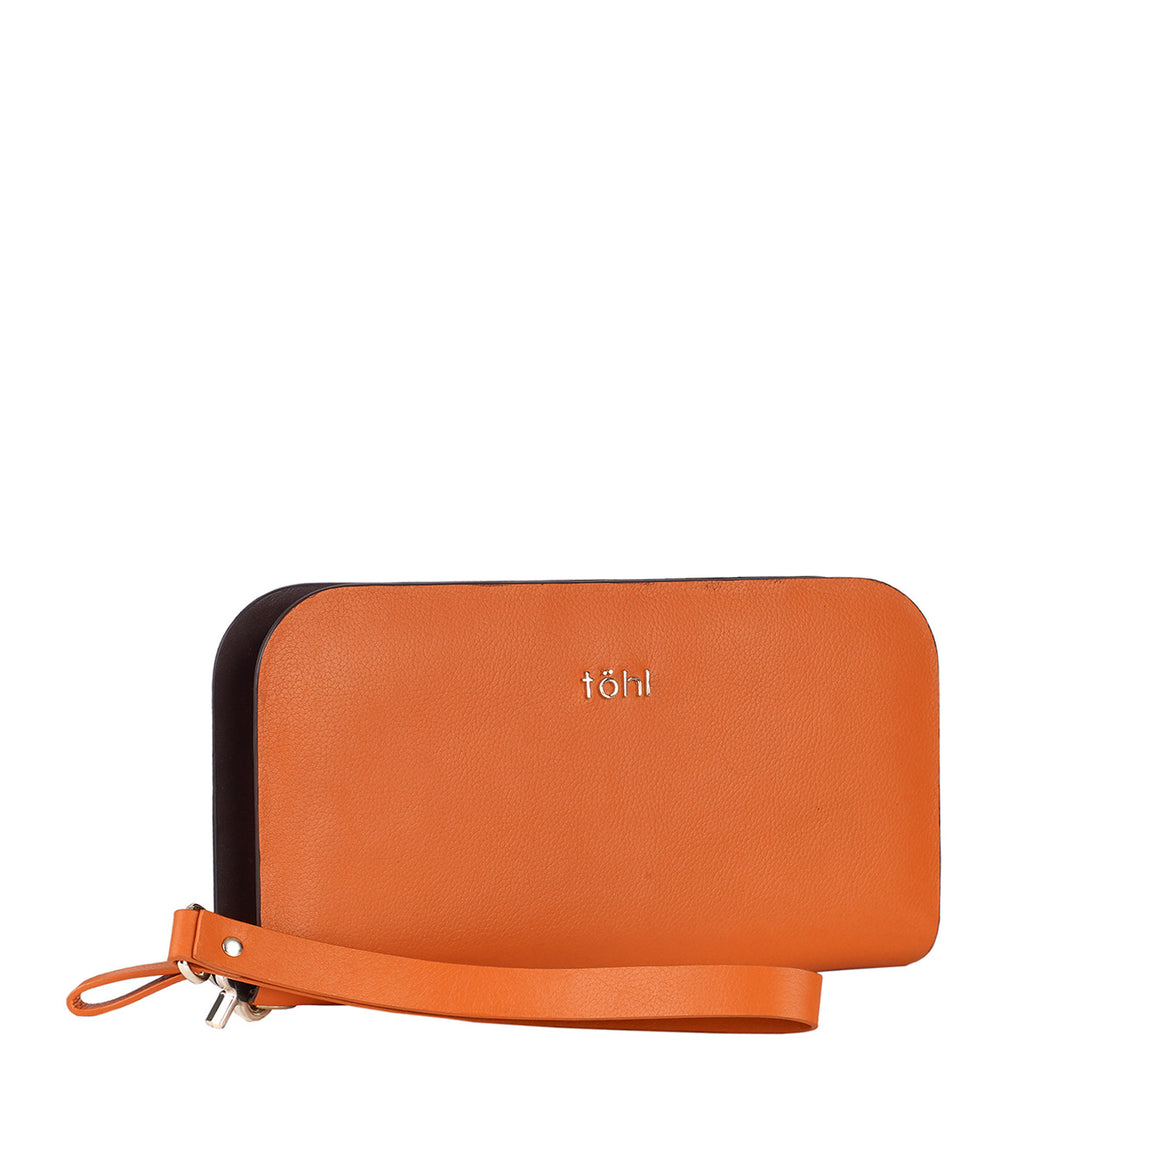 WT 0002 - TOHL DELANCEY WOMEN'S CLUTCH WALLET - ORANGE MELON